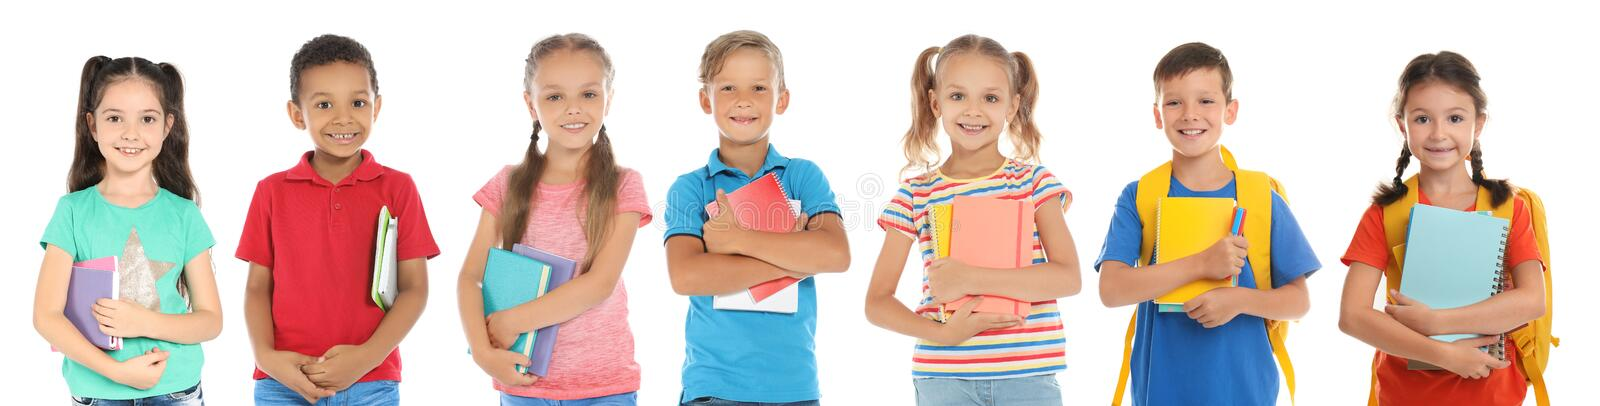 Cute school children with stationery royalty free stock photography